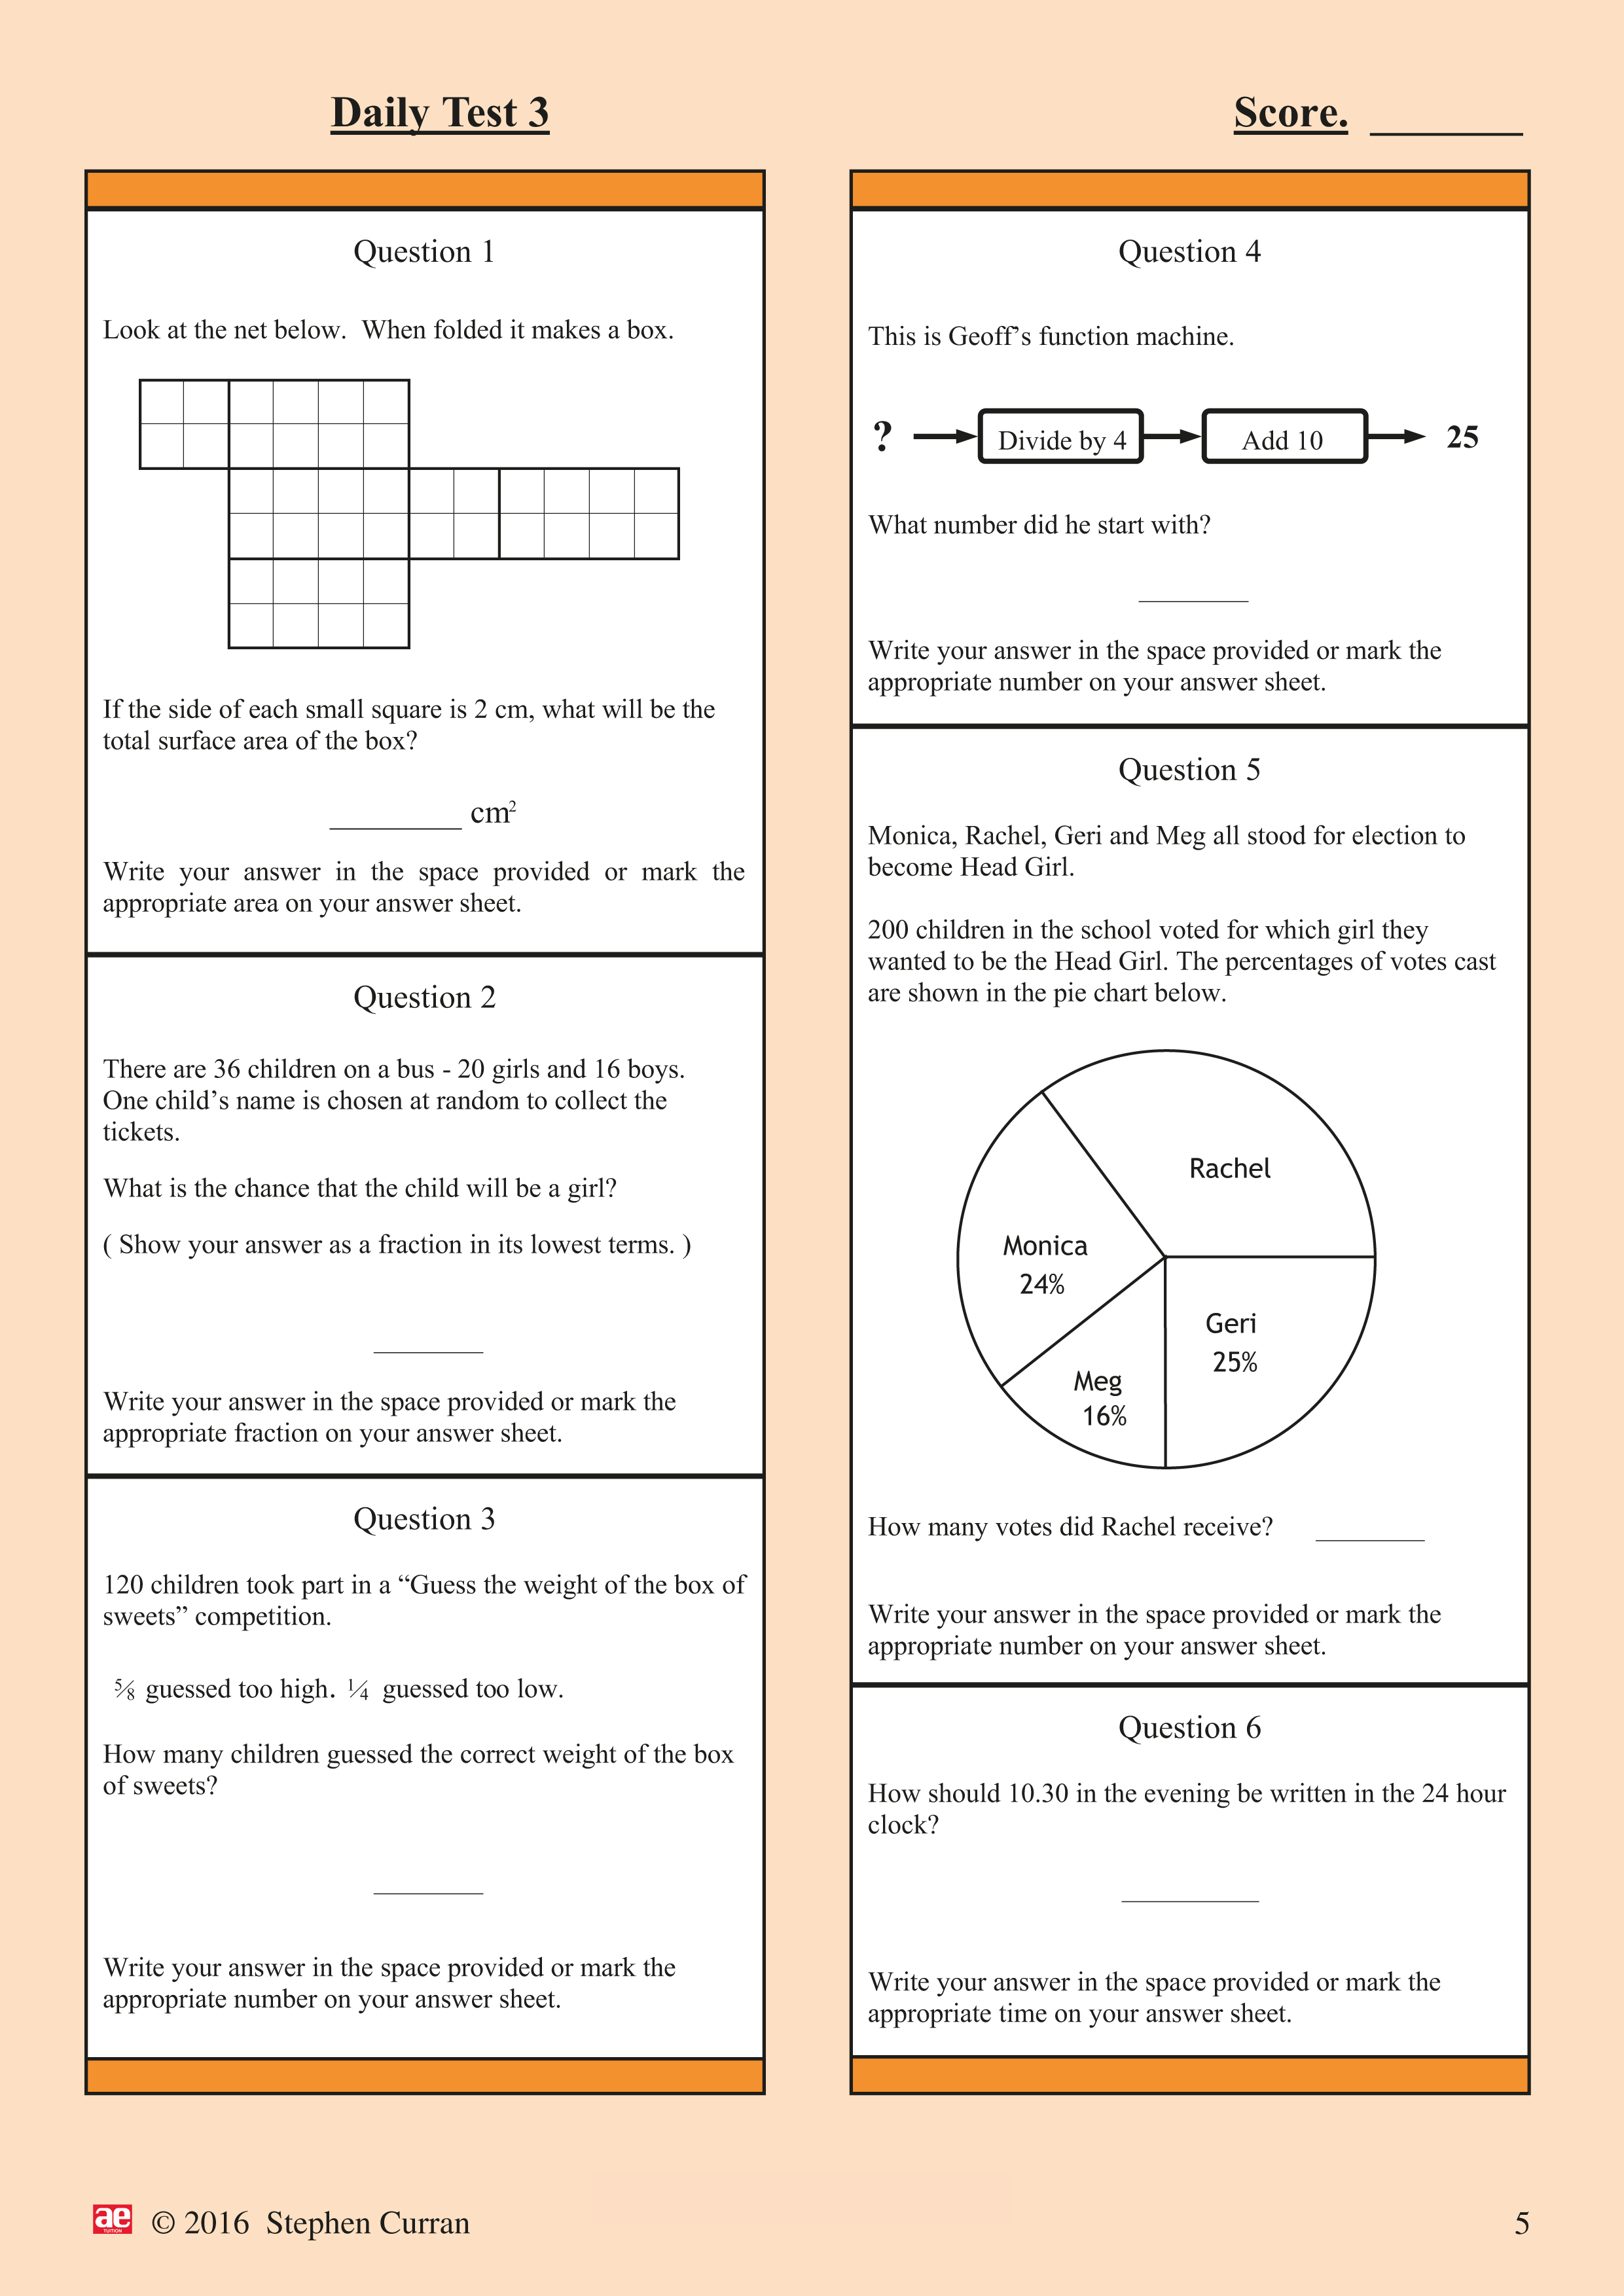 11 Plus Mathematics - Daily Practice Tests 1 - AE Publications